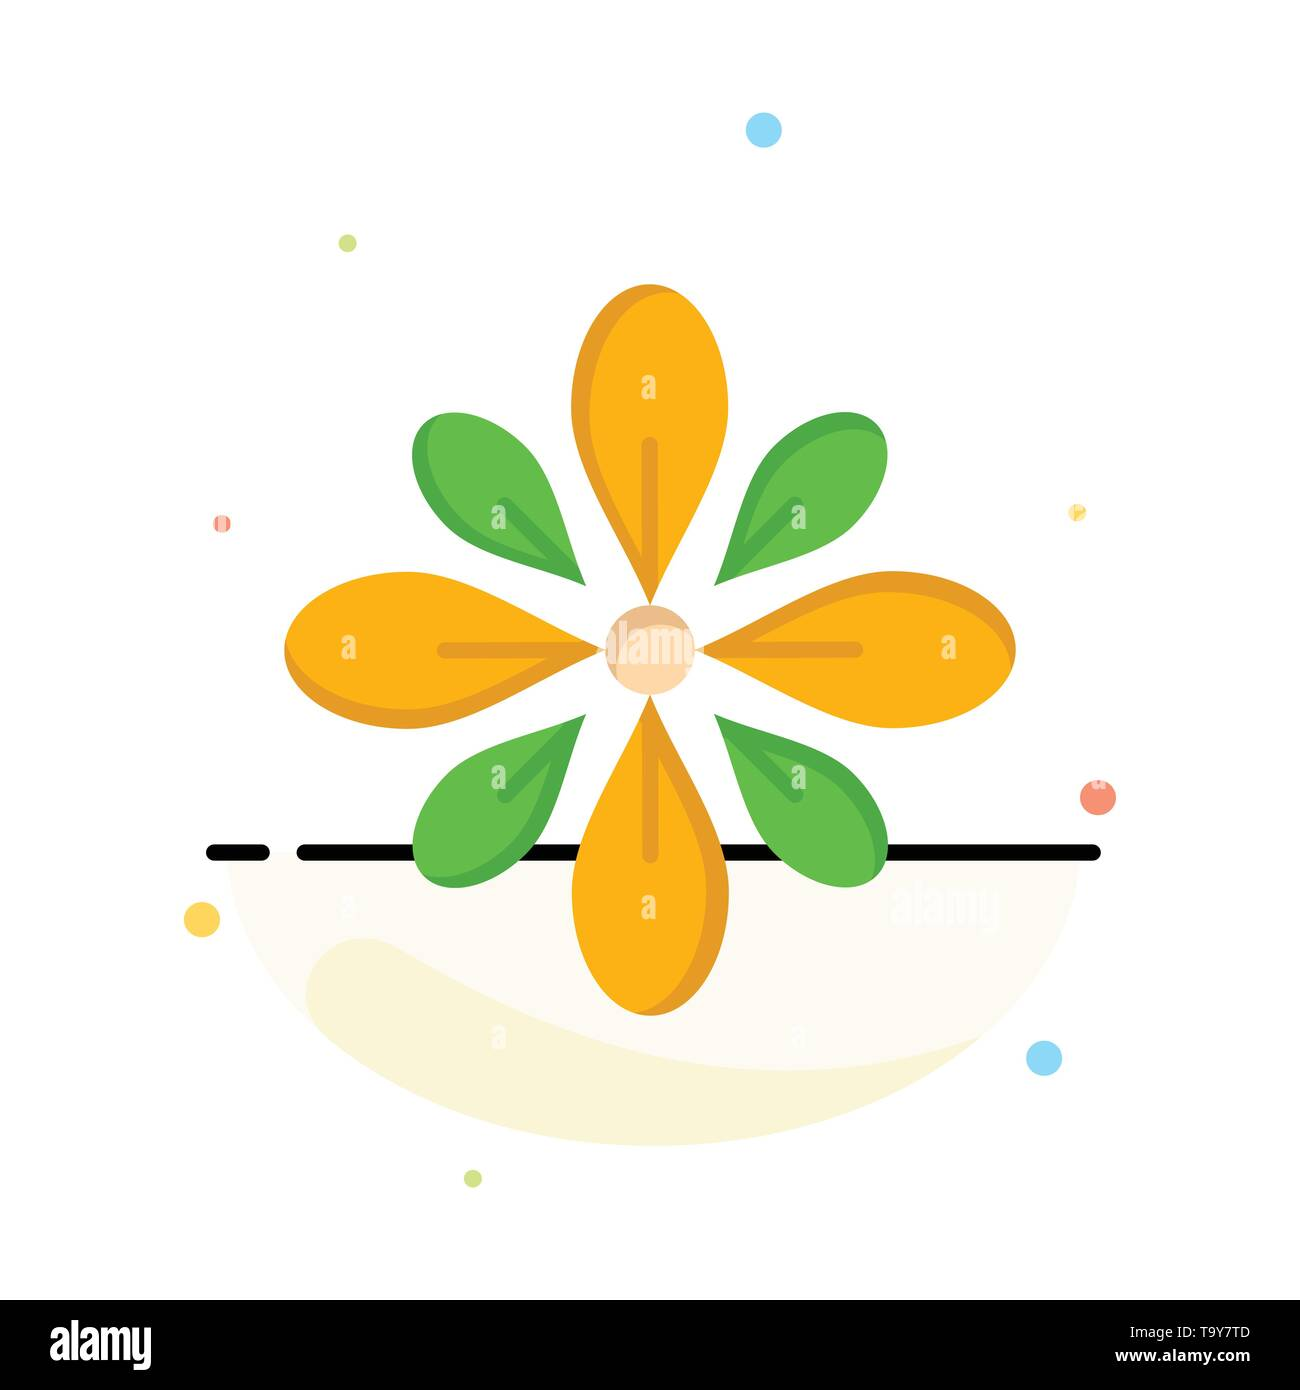 Celebrate, Decorate, Decoration, Diwali, Hindu, Holi Abstract Flat Color Icon Template - Stock Image